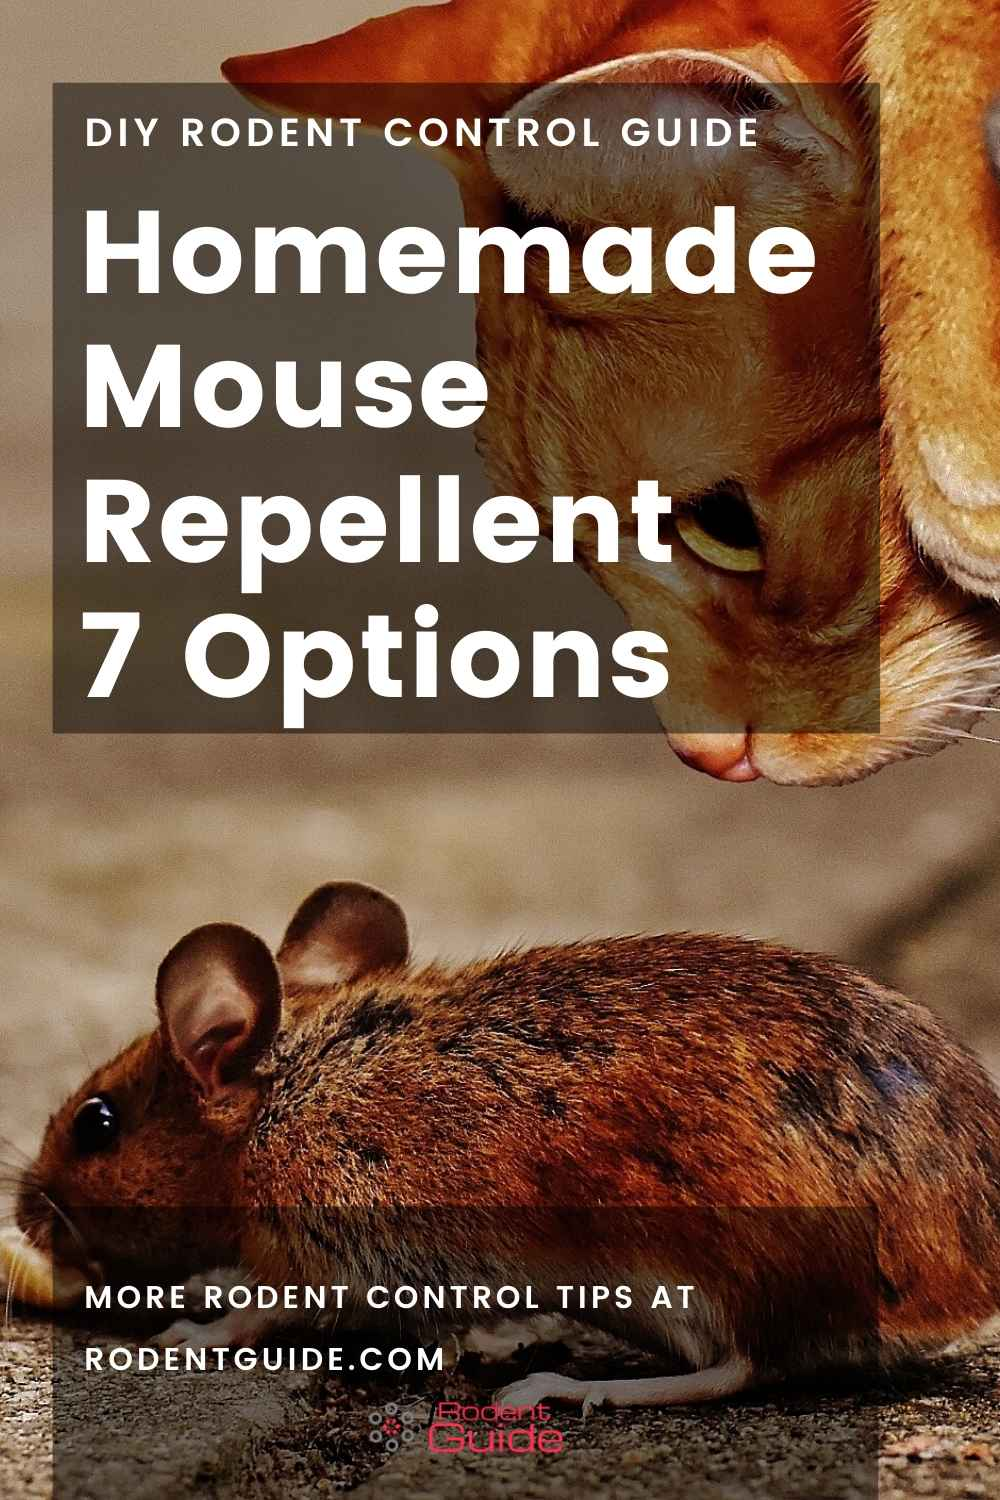 Homemade Mouse Repellent 7 options